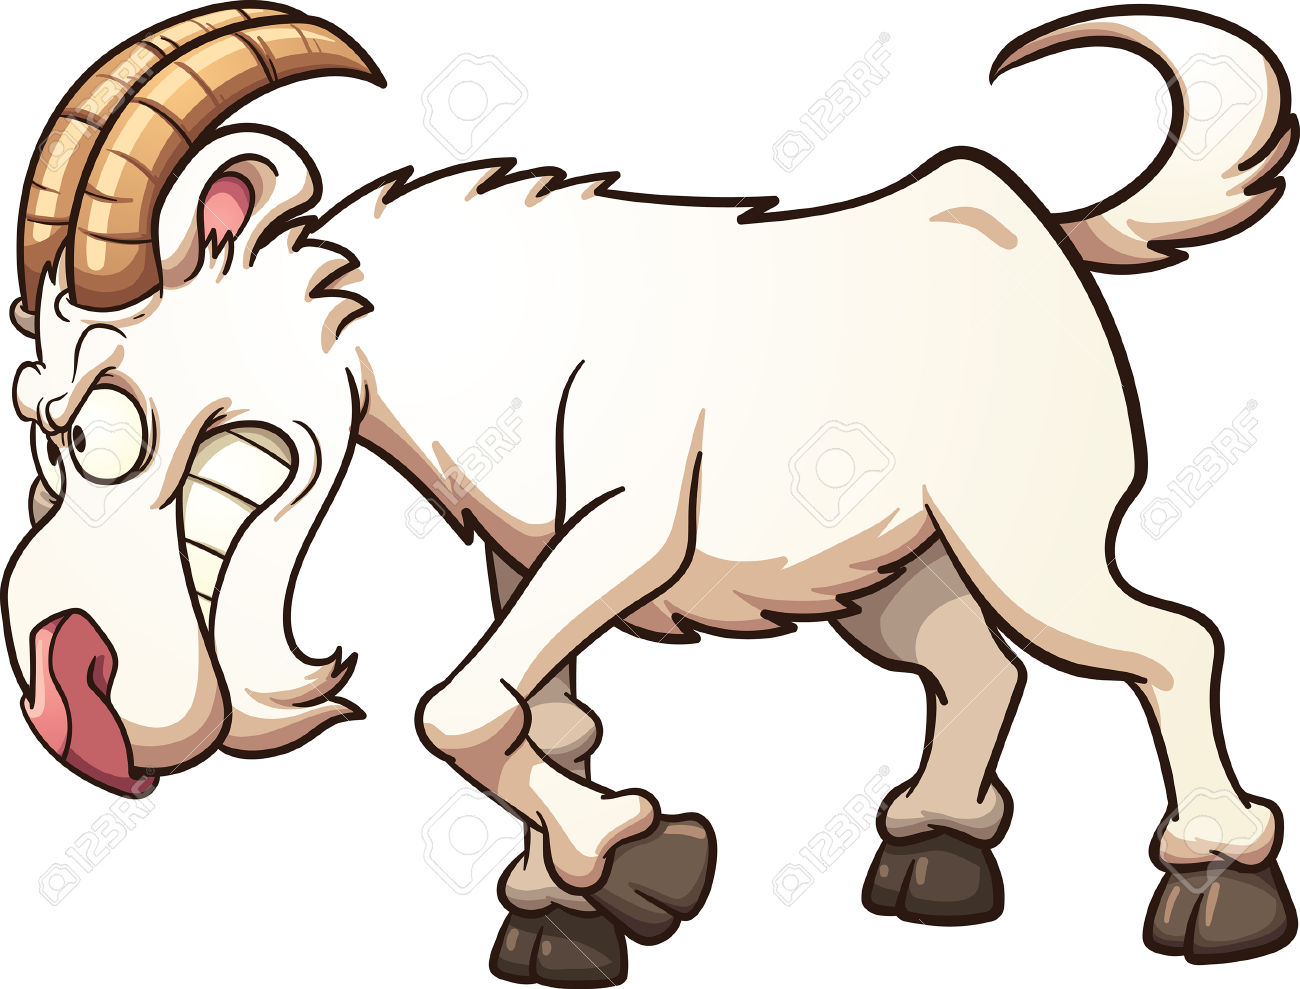 Goats free download best. Goat clipart strong